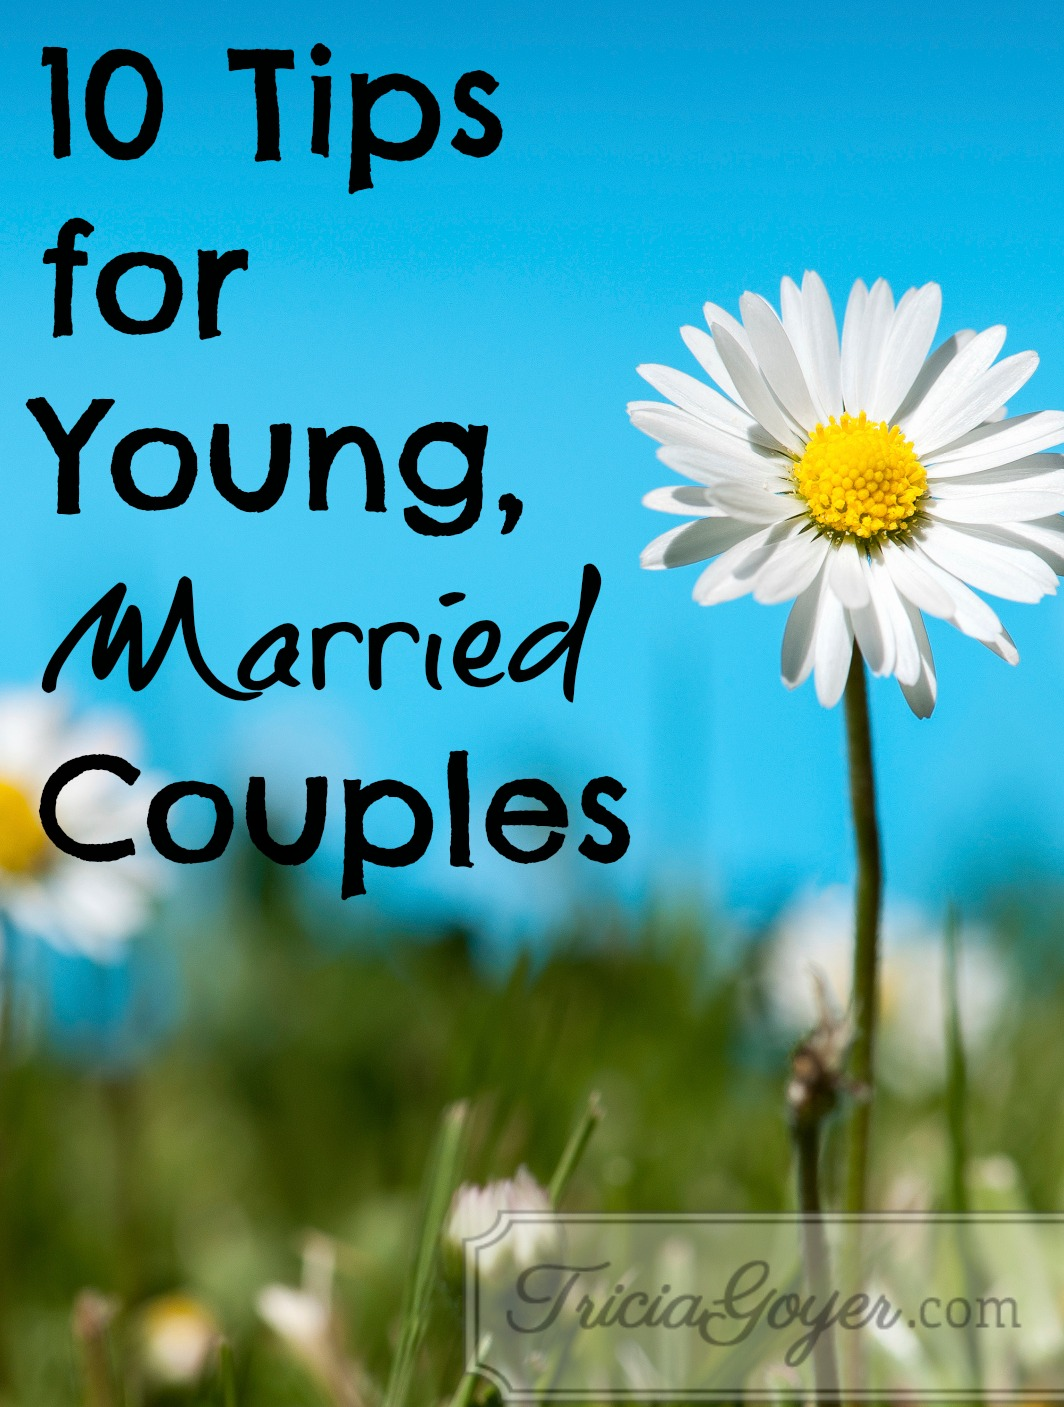 10 tips for young married couples